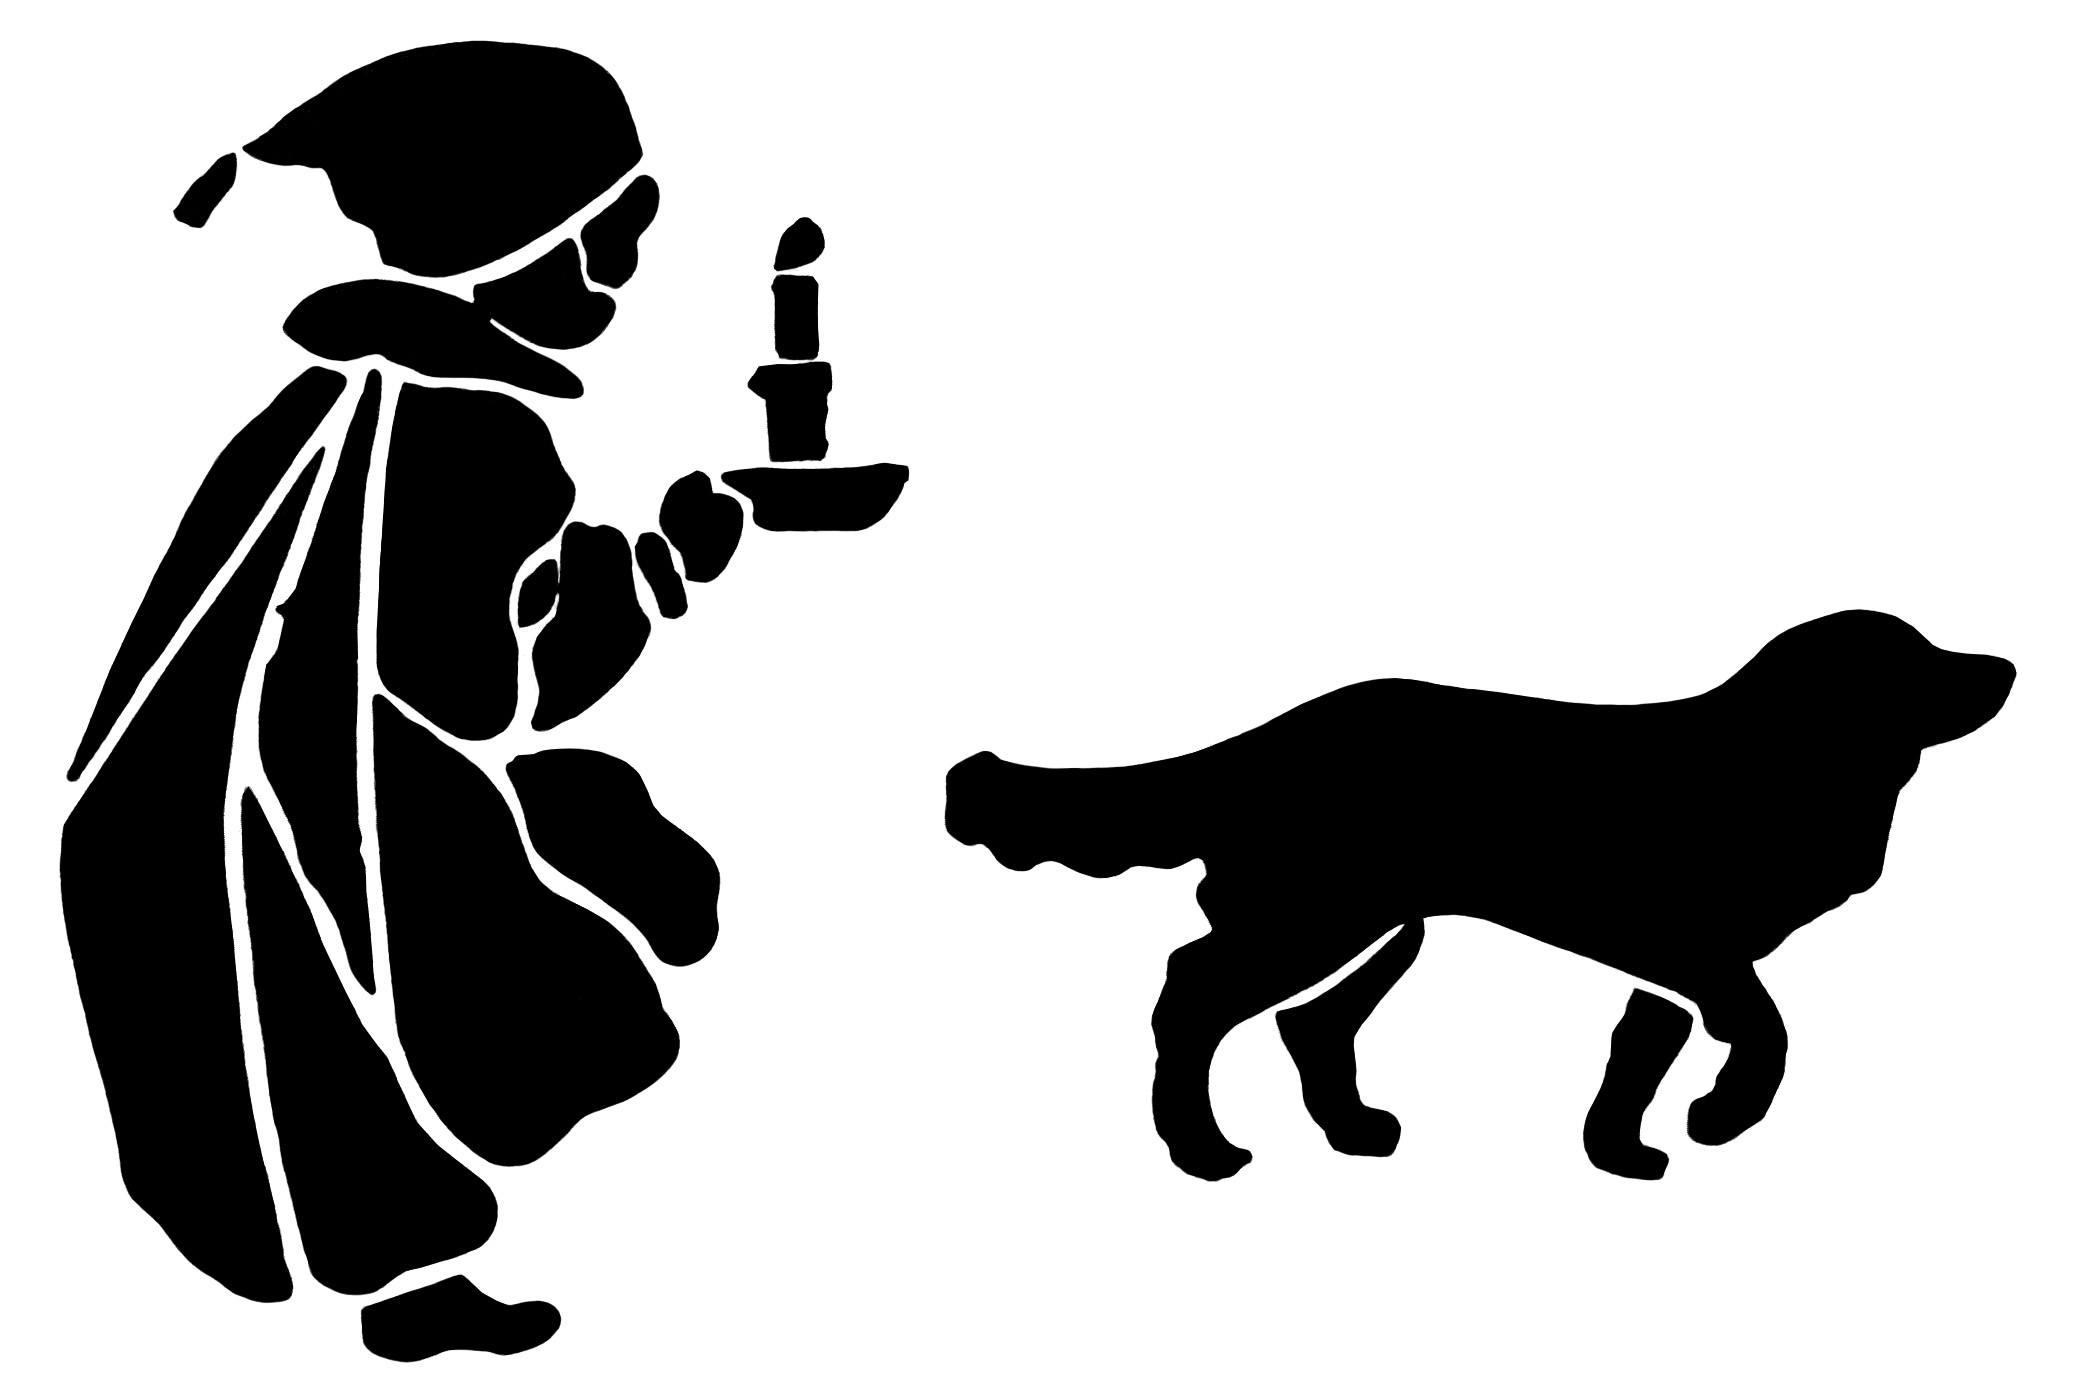 Older boy with dog black and white clipart png black and white library Silhouettes Archives - Old Design Shop Blog png black and white library